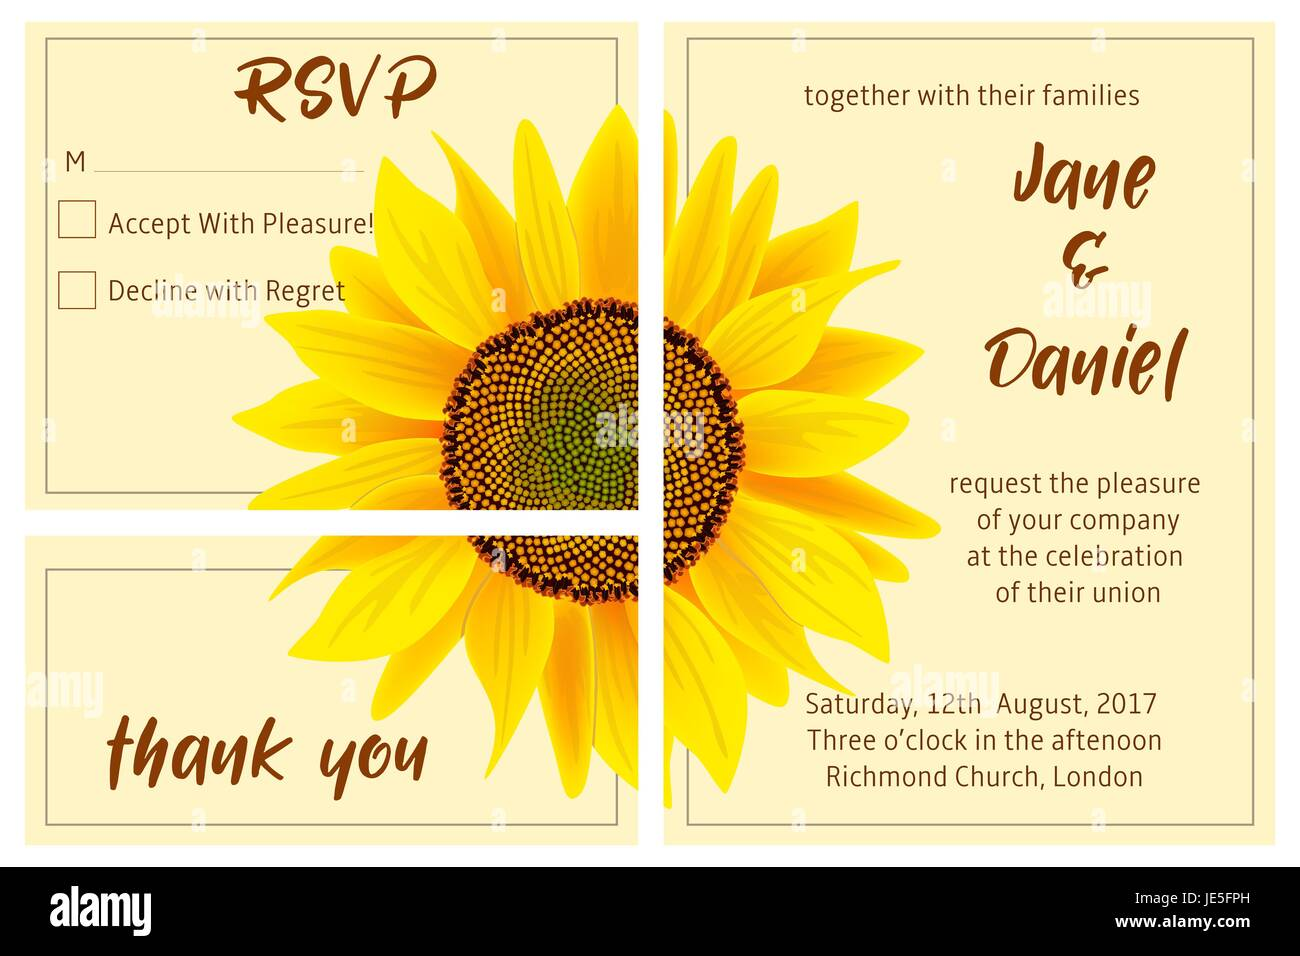 set of wedding invitation card sunflower on the background 3 in 1 poster invitation greeting business card for decoration packing wrapping pri